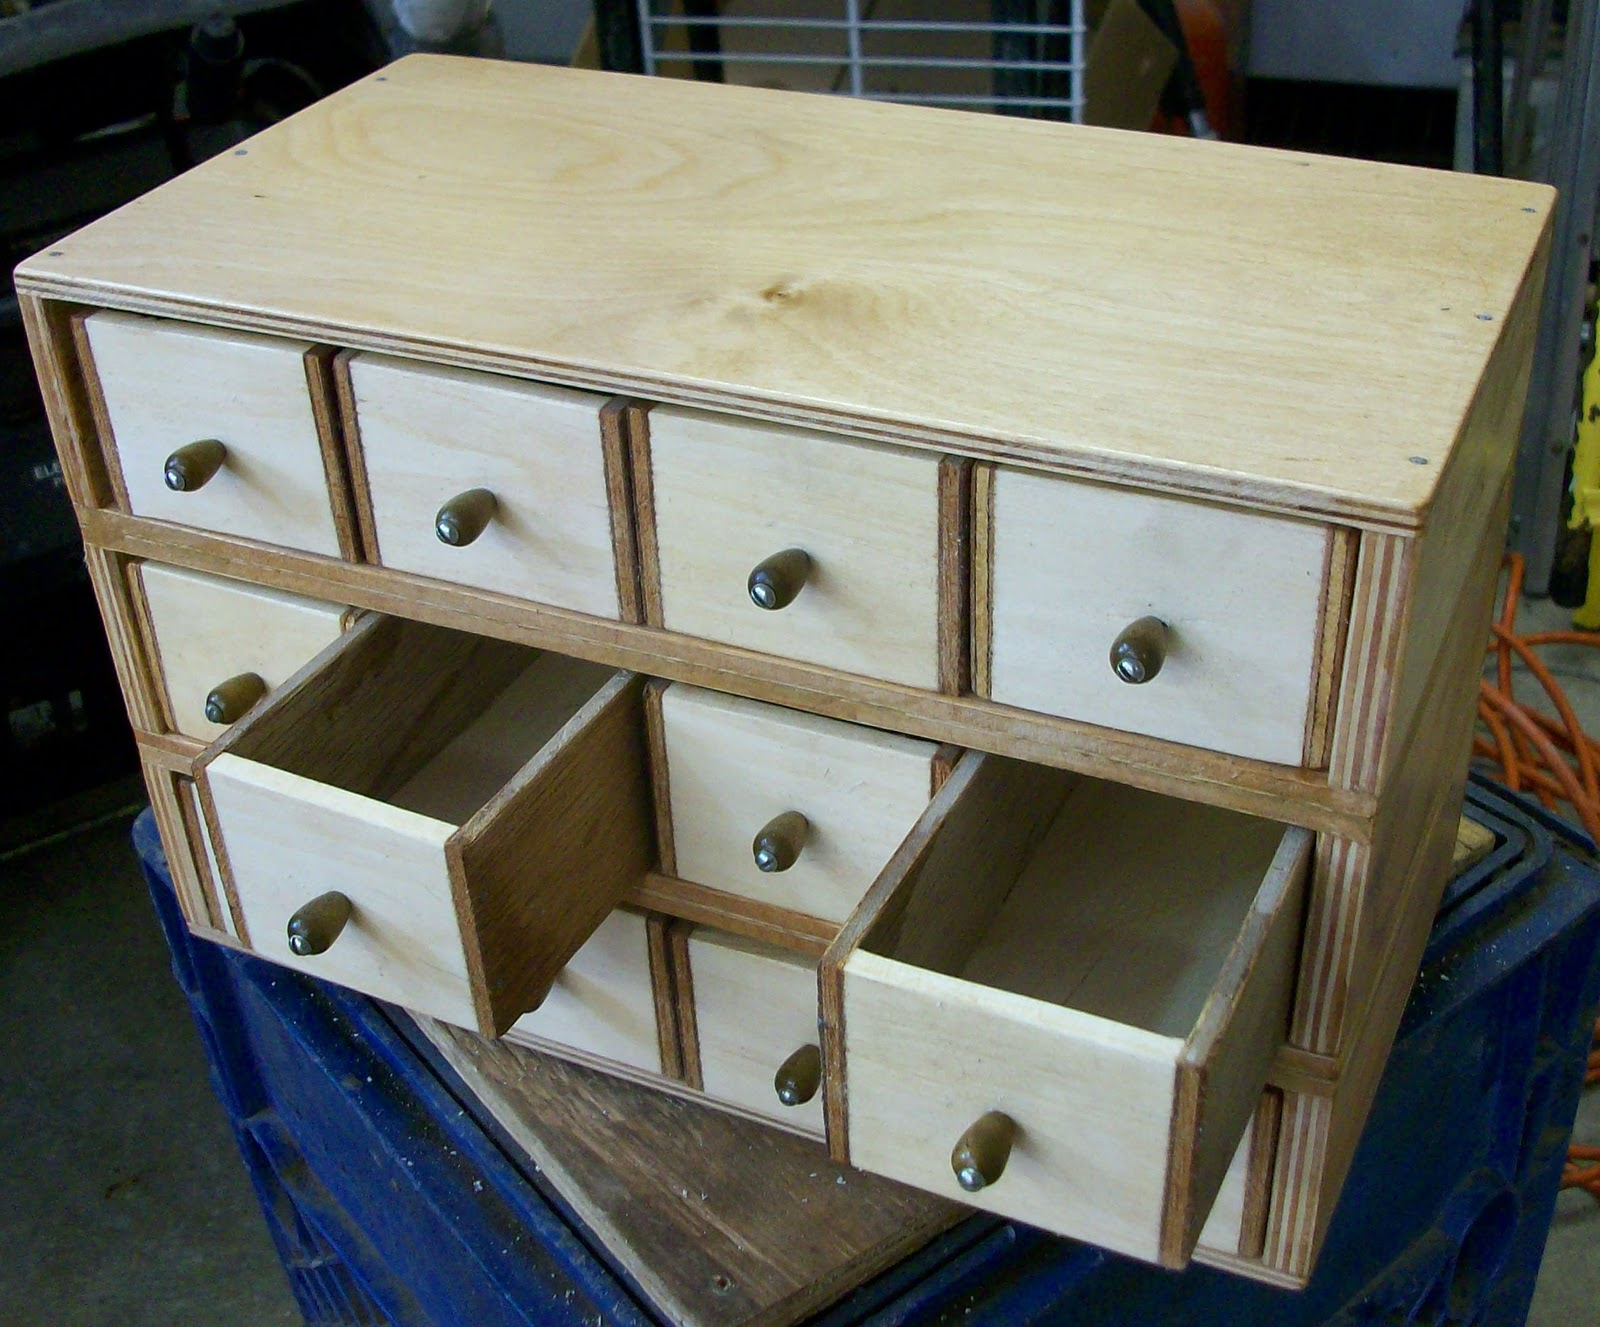 Not Long Ago, My Dad Said He Was Given Some Scrap Wood, And That He Was  Making Me Another Parts Cabinet With Little Drawers Similar To The Cheese  Box ...